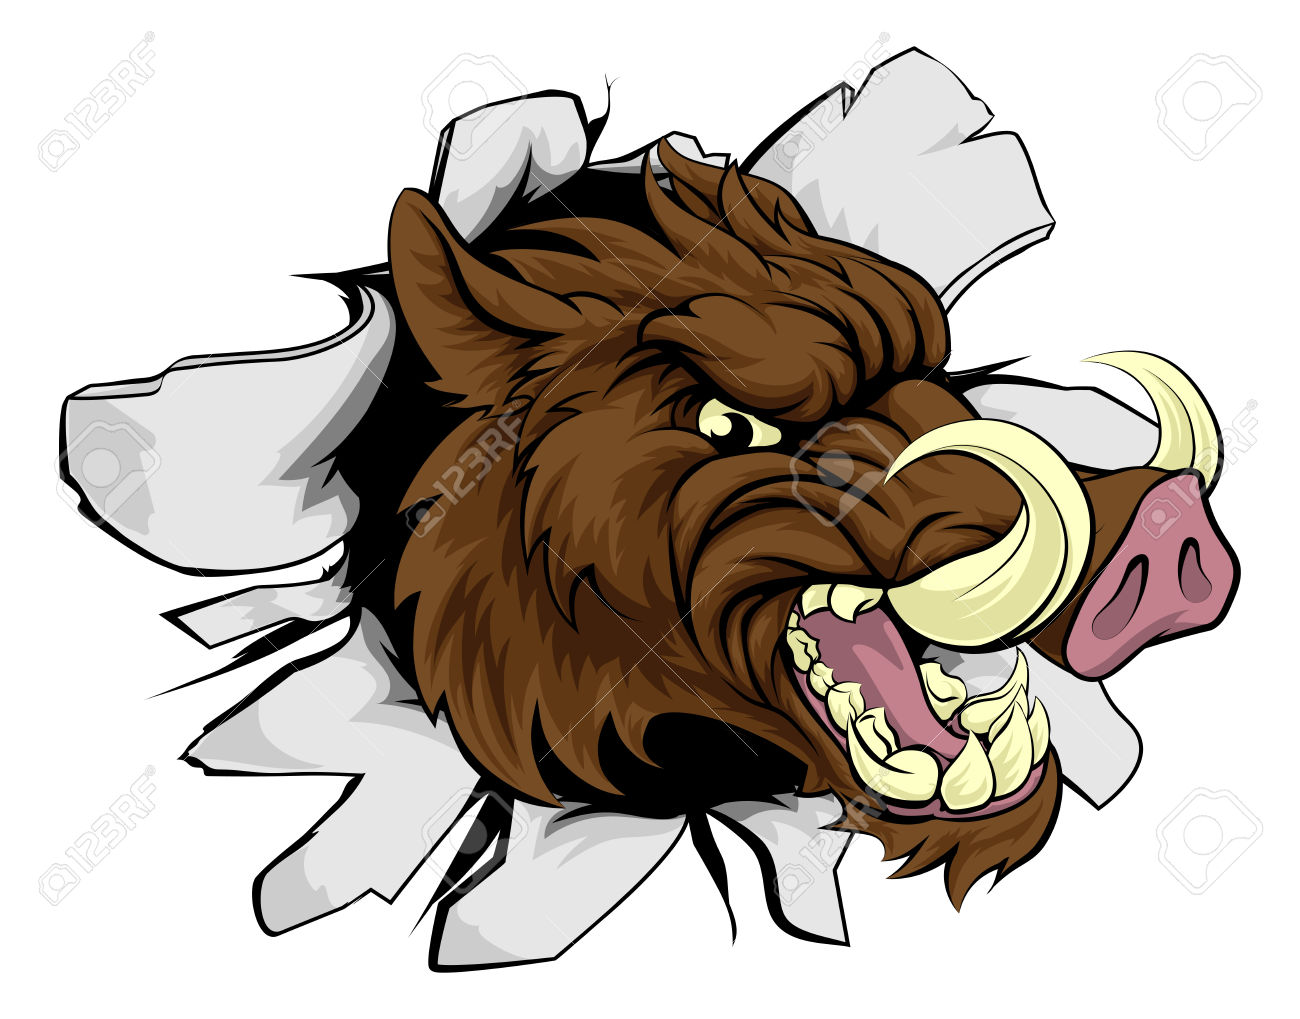 Boar clipart #1, Download drawings